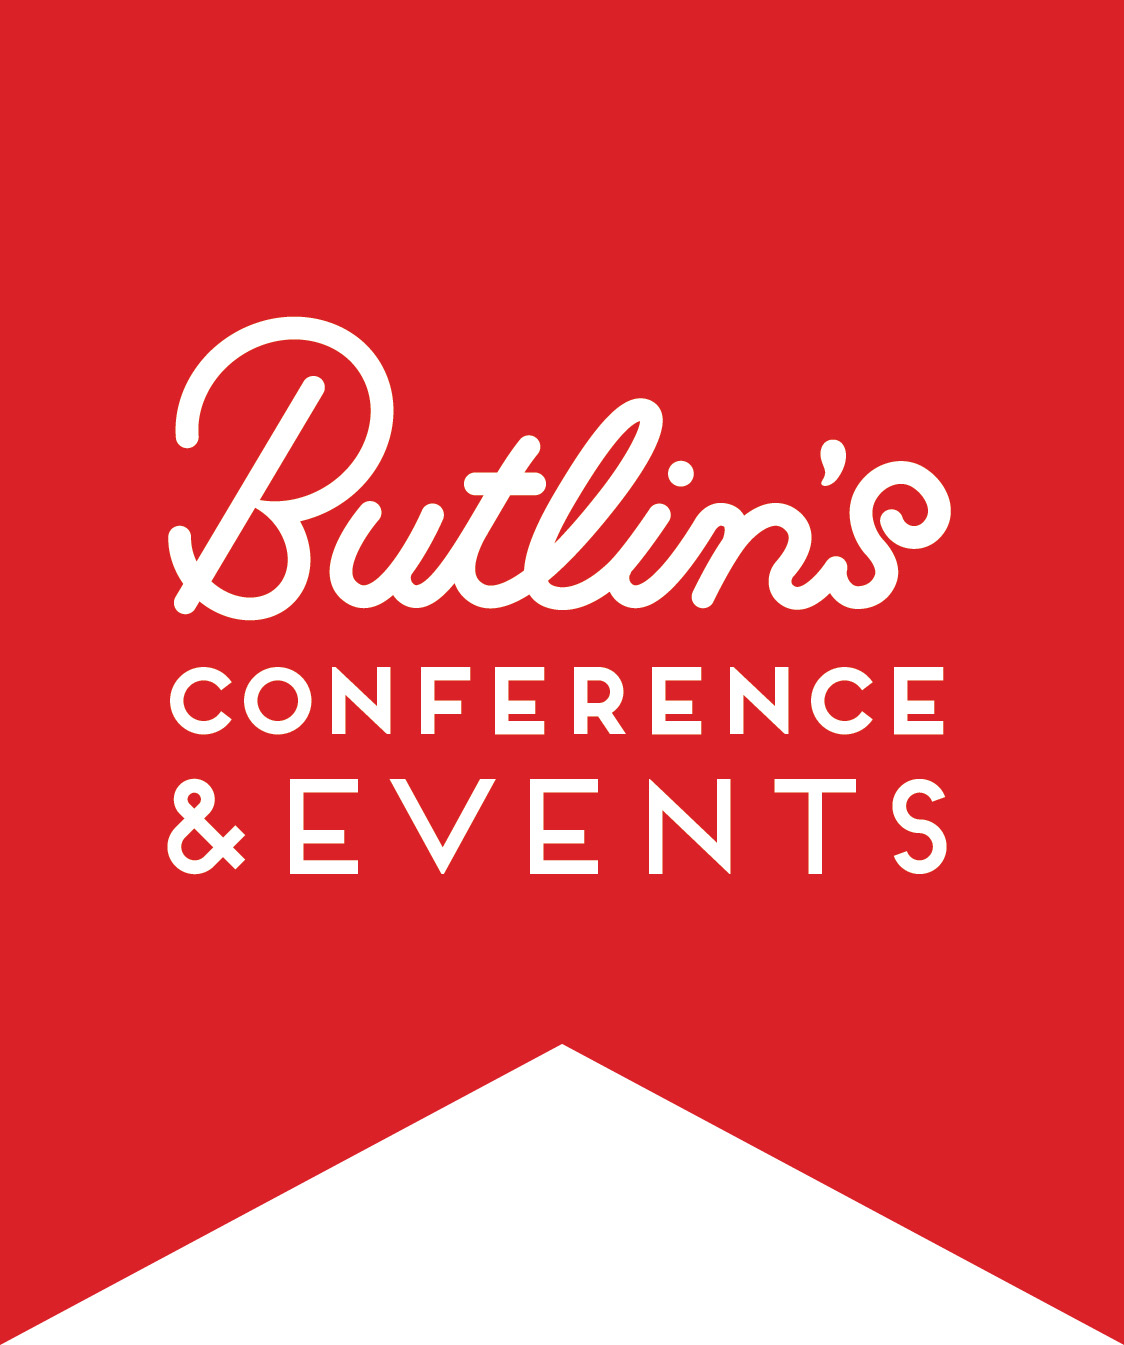 Butlin's Events